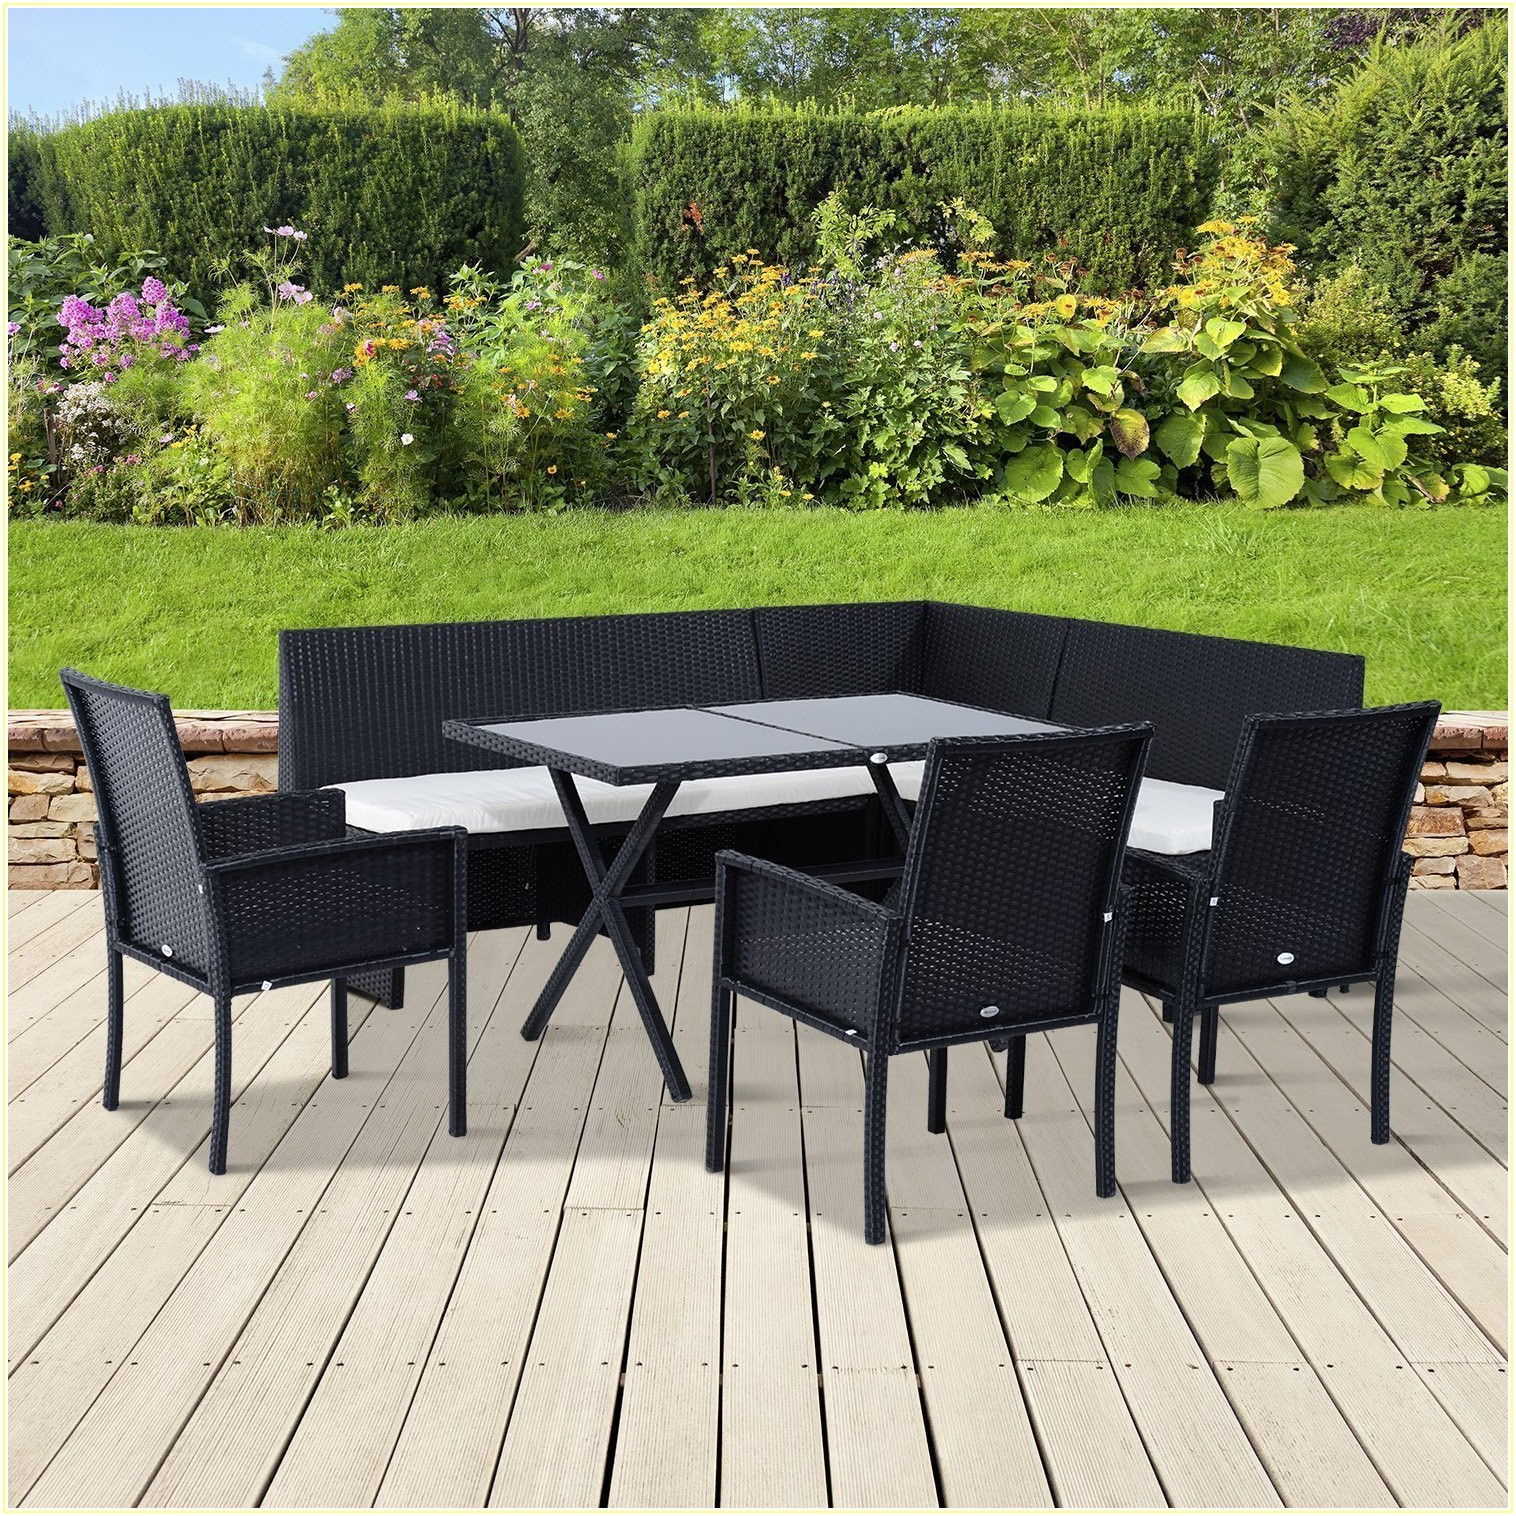 Outdoor Patio Table And Chairs Set